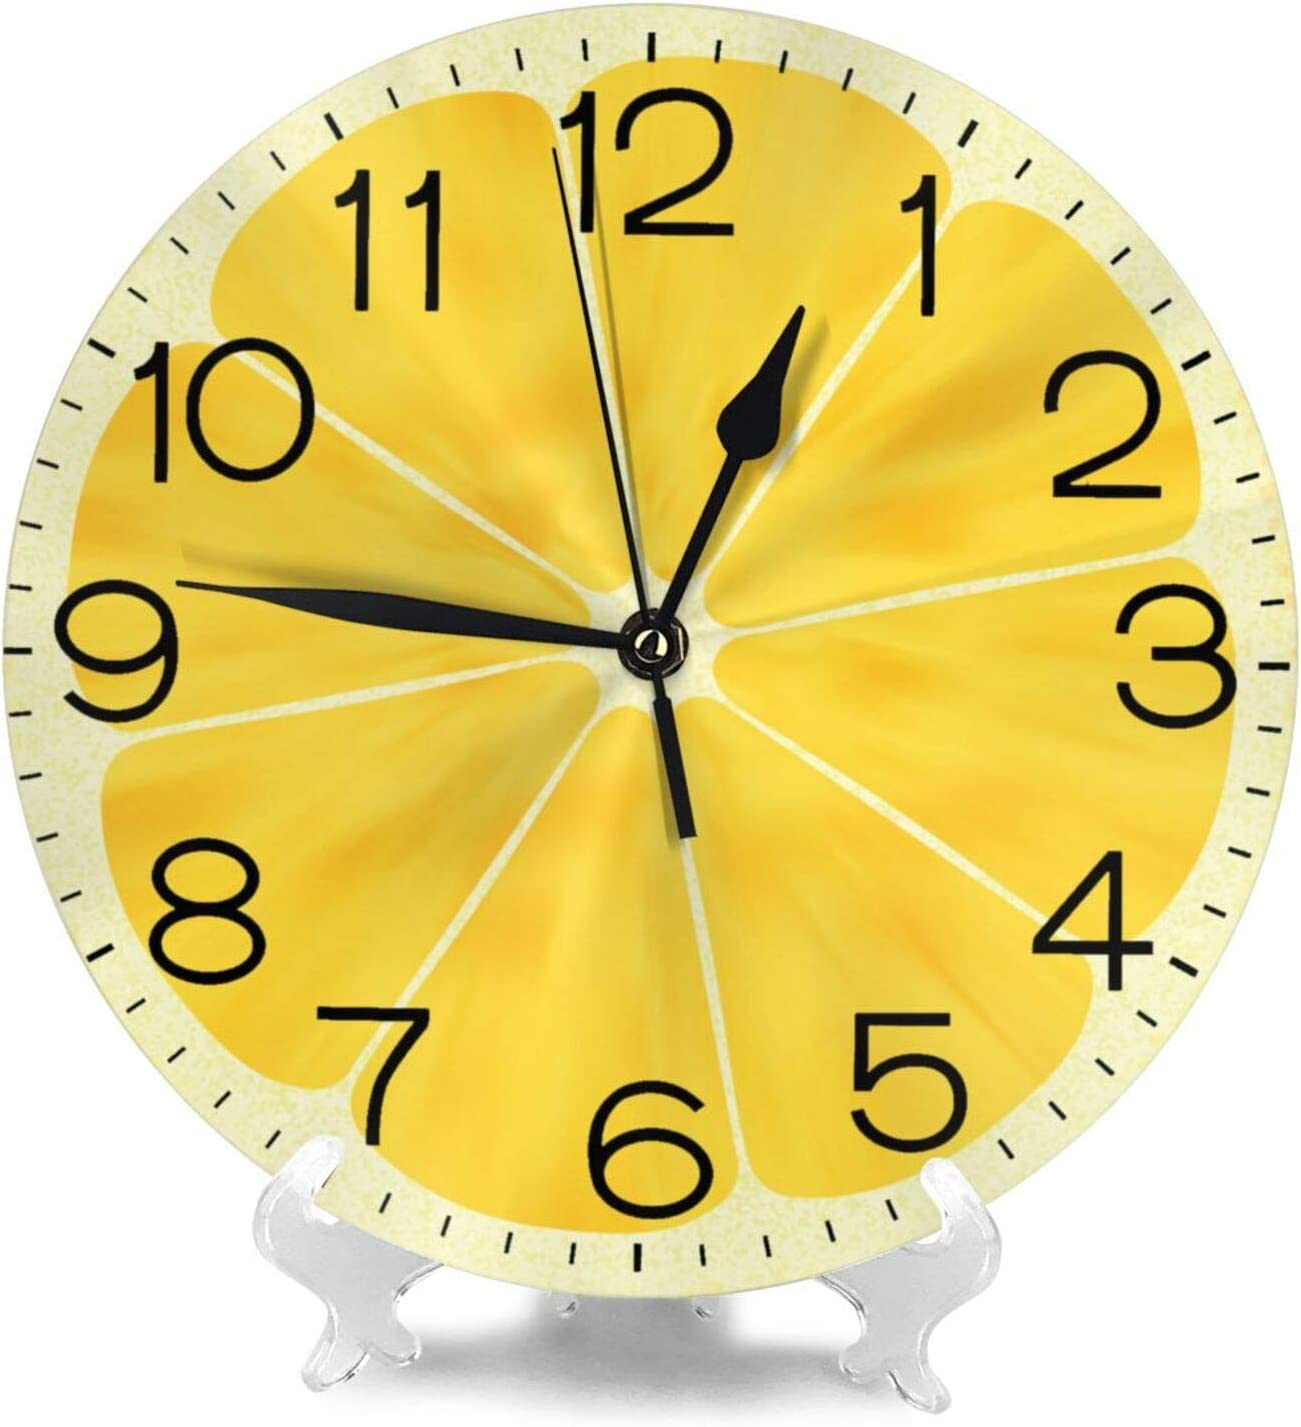 Battery Operated Wall Clock Clocks for Home Decor Living Room Kitchen Bedroom Office School N//W Bright Yellow Orange Wall Clock 10 Round,